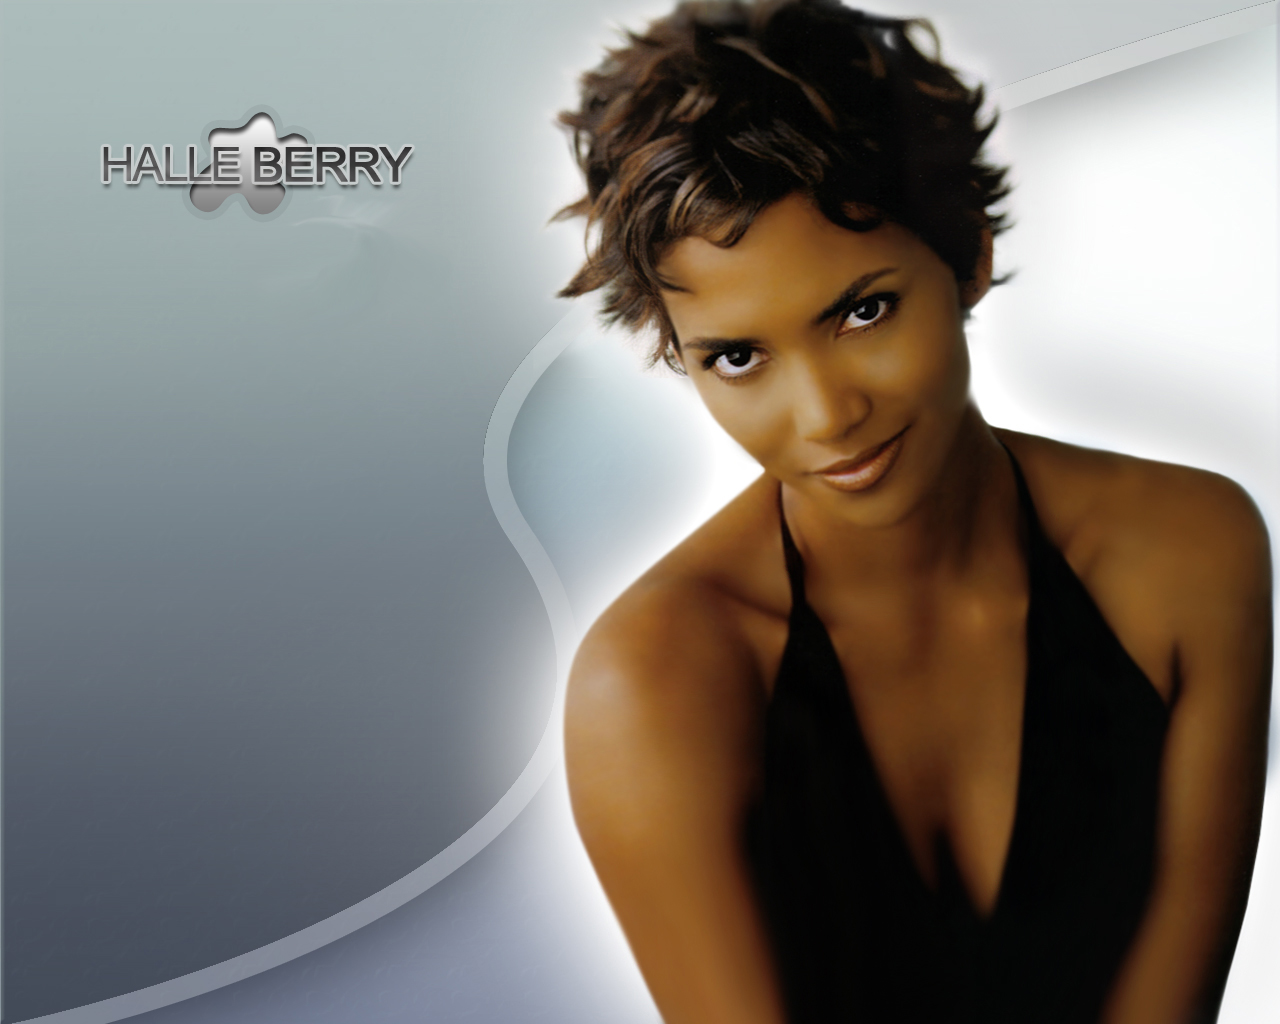 http://4.bp.blogspot.com/-e299nCg7mDA/T3v5_C86K8I/AAAAAAAAElw/Bn8DuUh1RV8/s1600/Halle+Berry+Fashion+Photo+stills+%288%29.jpg